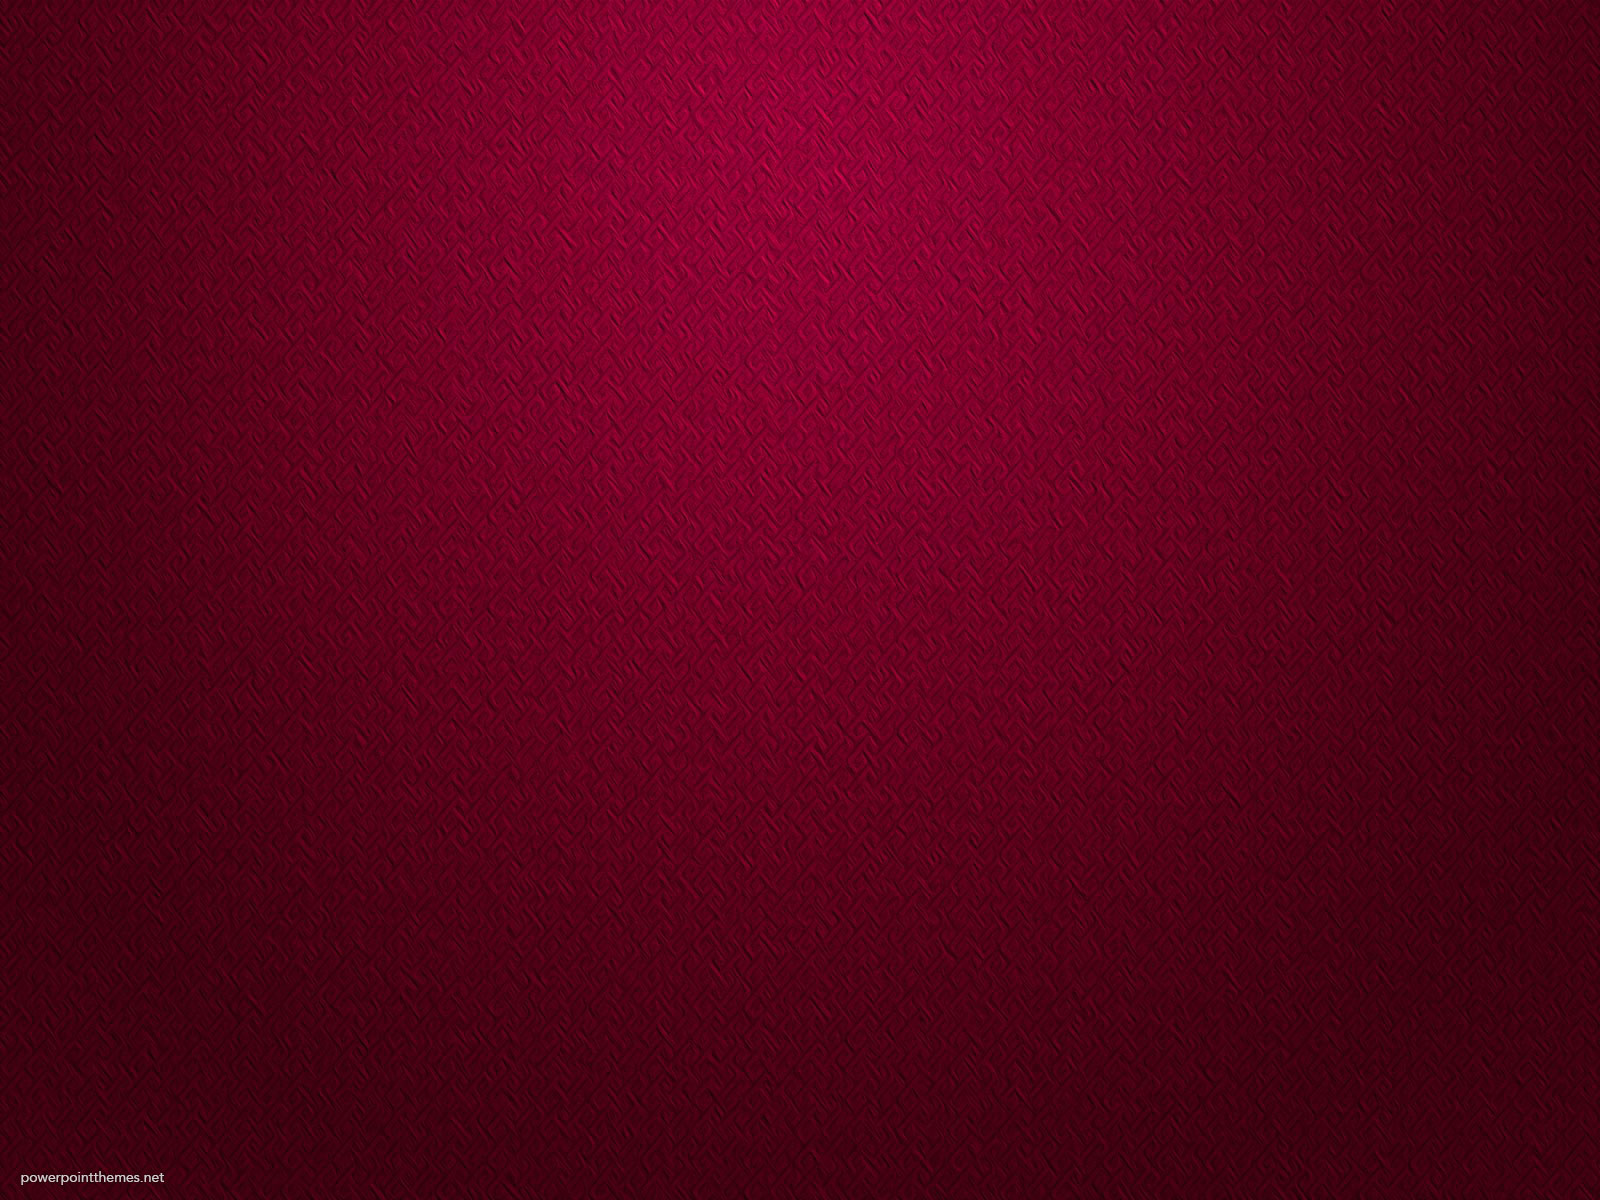 Red Texture HD Background